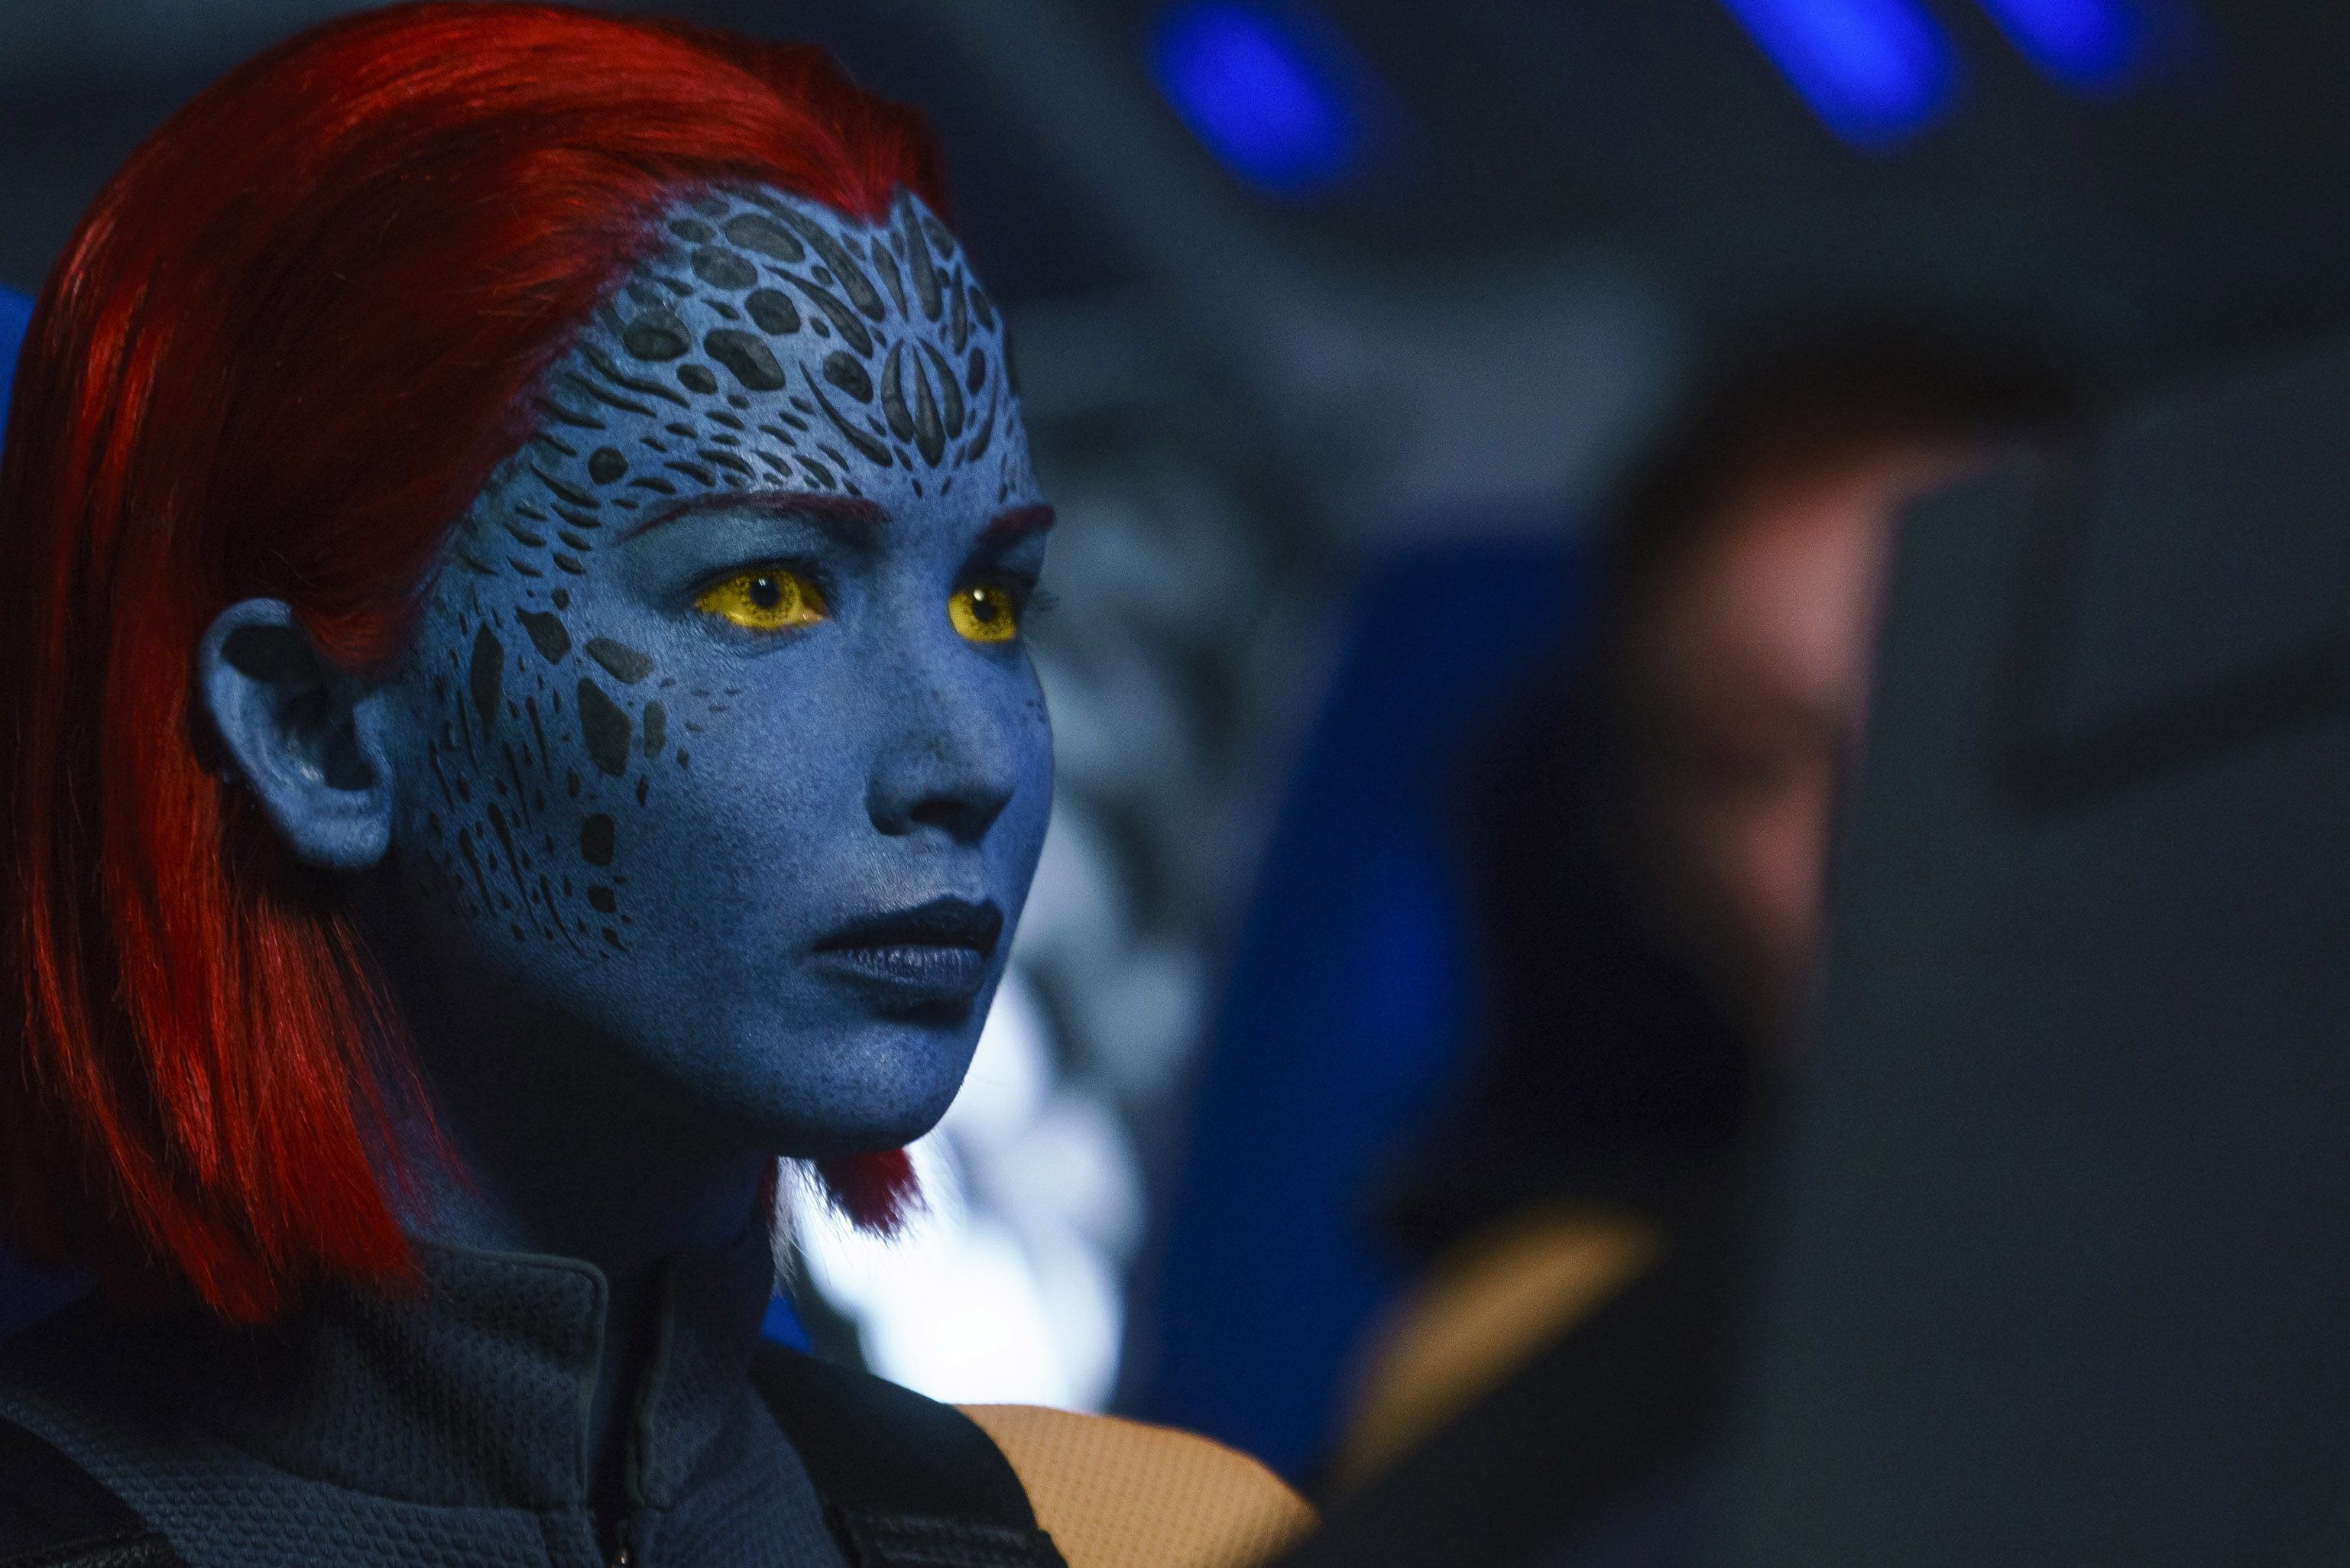 Disney CEO suggests the X-Men franchise would go to Marvel Studios